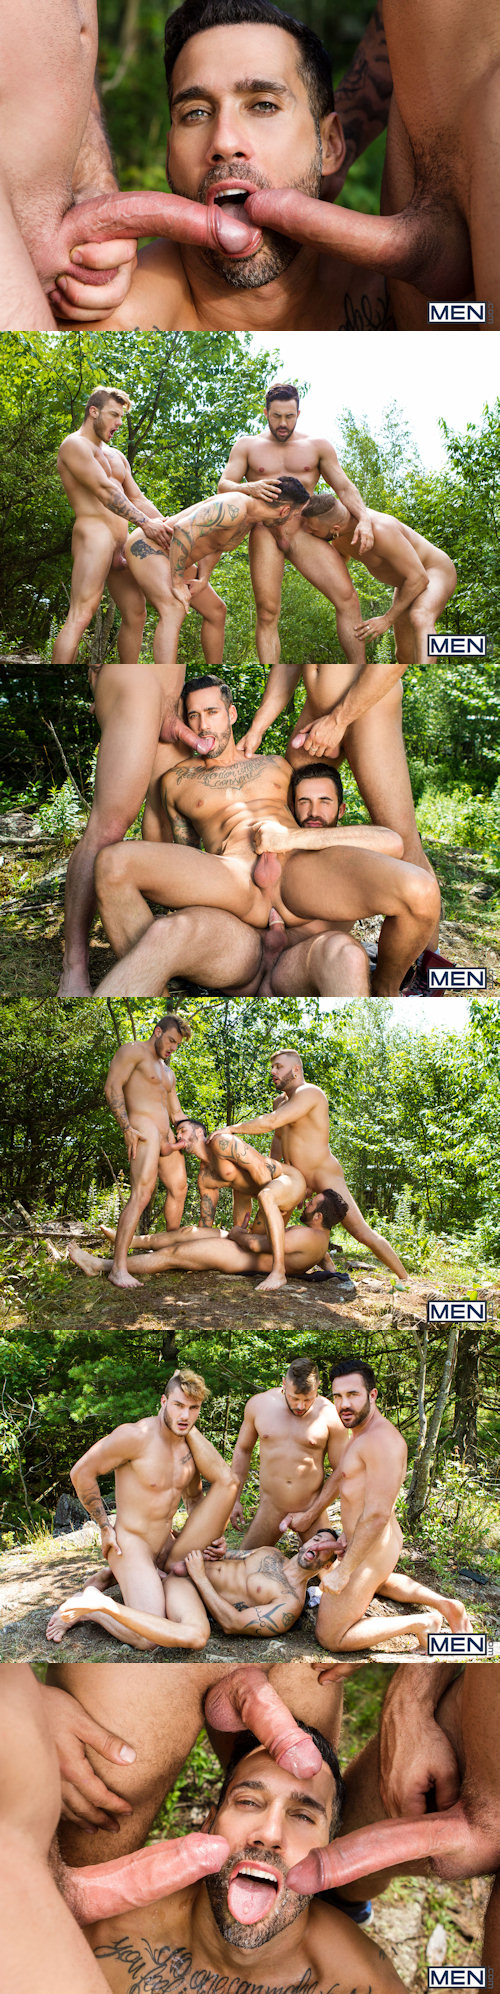 men-william-seed-alexy-jessy-mateo-2.jpg